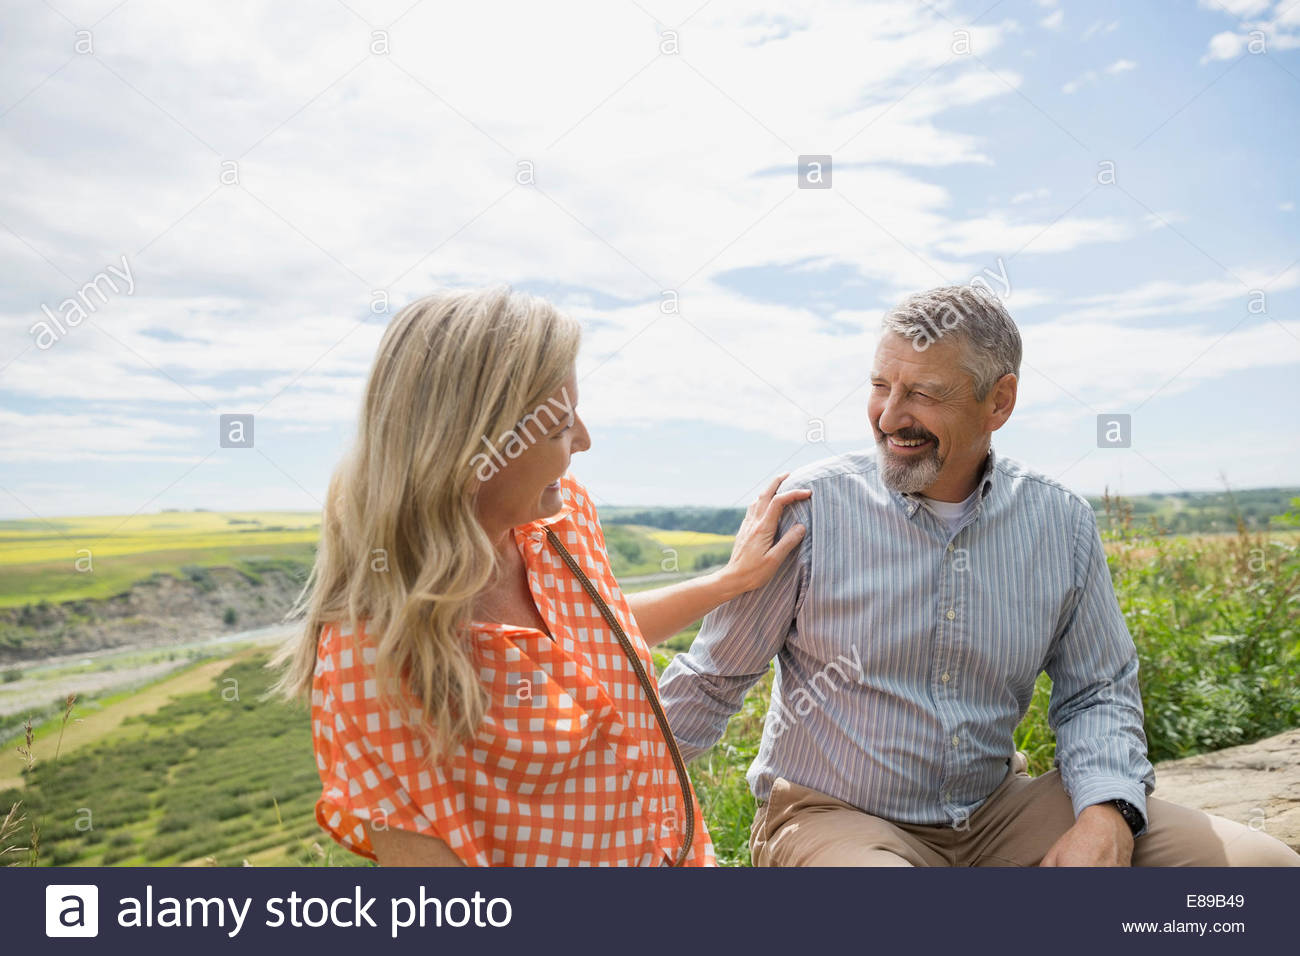 Couple laughing outdoors with countryside in background - Stock Image